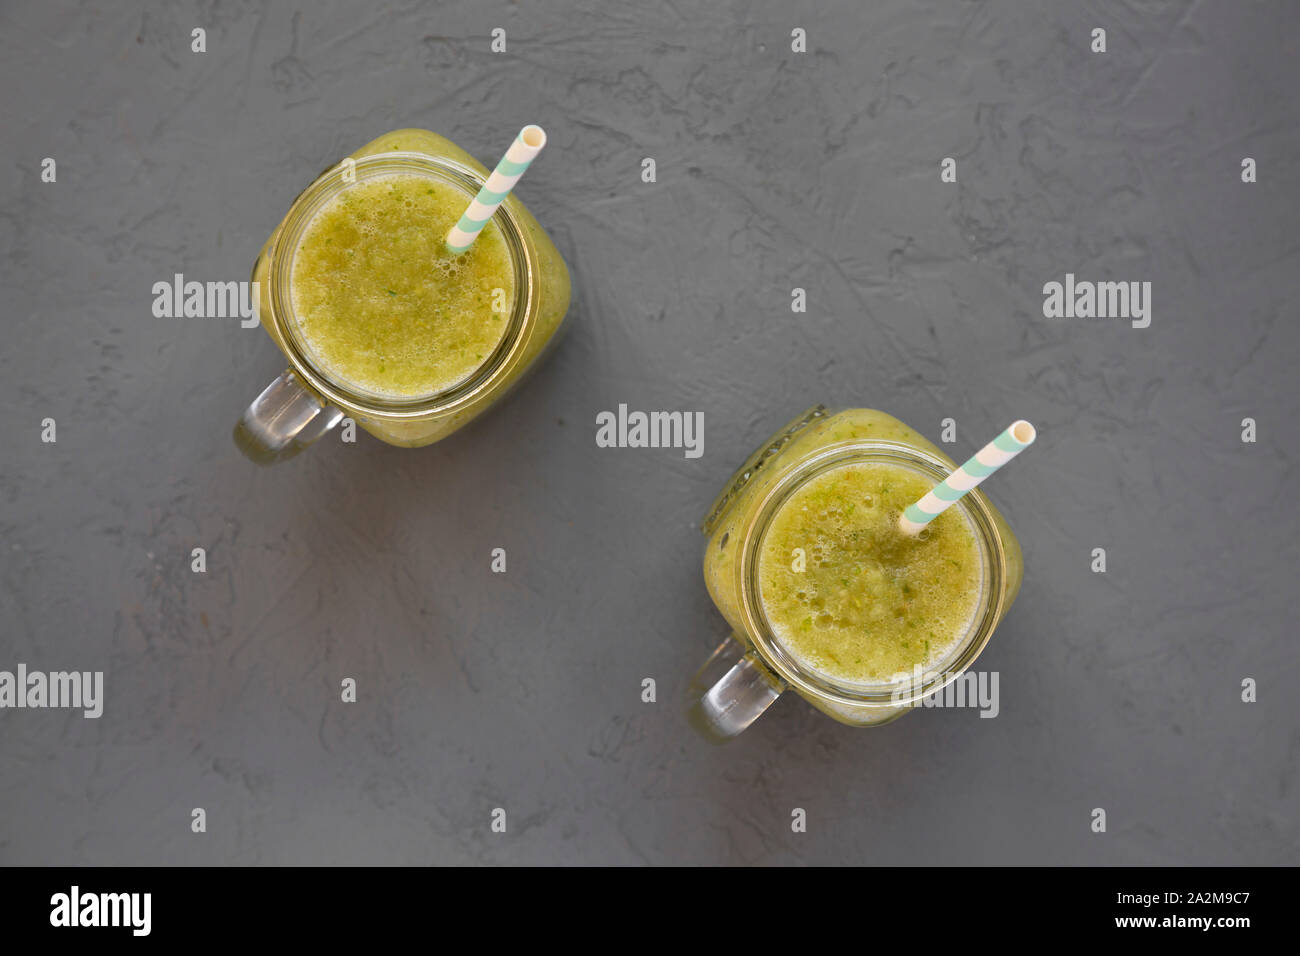 Homemade green cucumber apple smoothie in glass jars on a gray background, top view. Flat lay, overhead, from above. Stock Photo